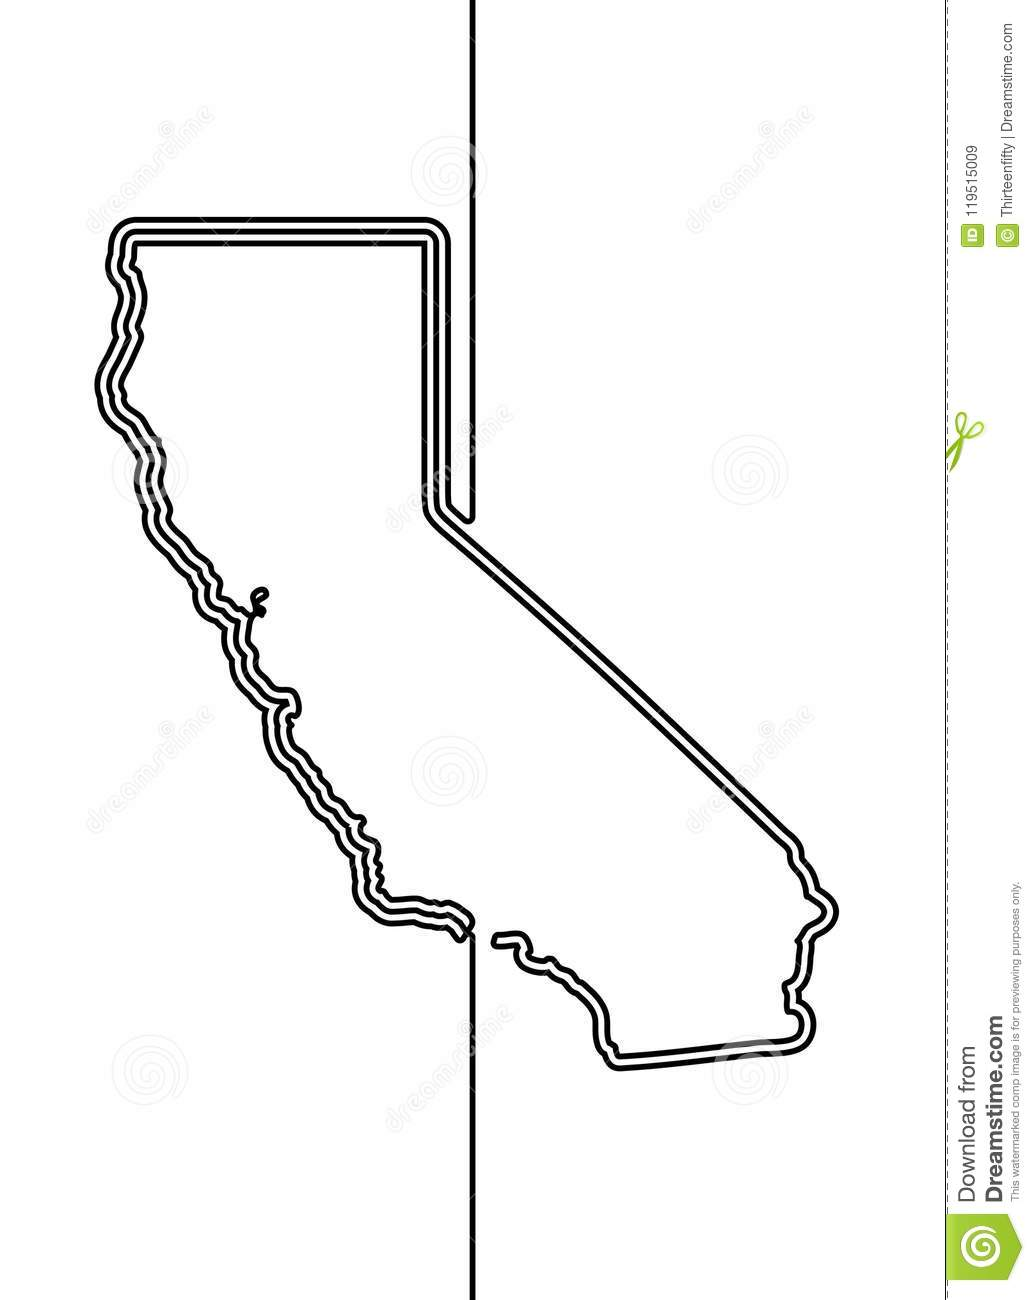 Download California Continuous Contour Vector Line Drawing Stock